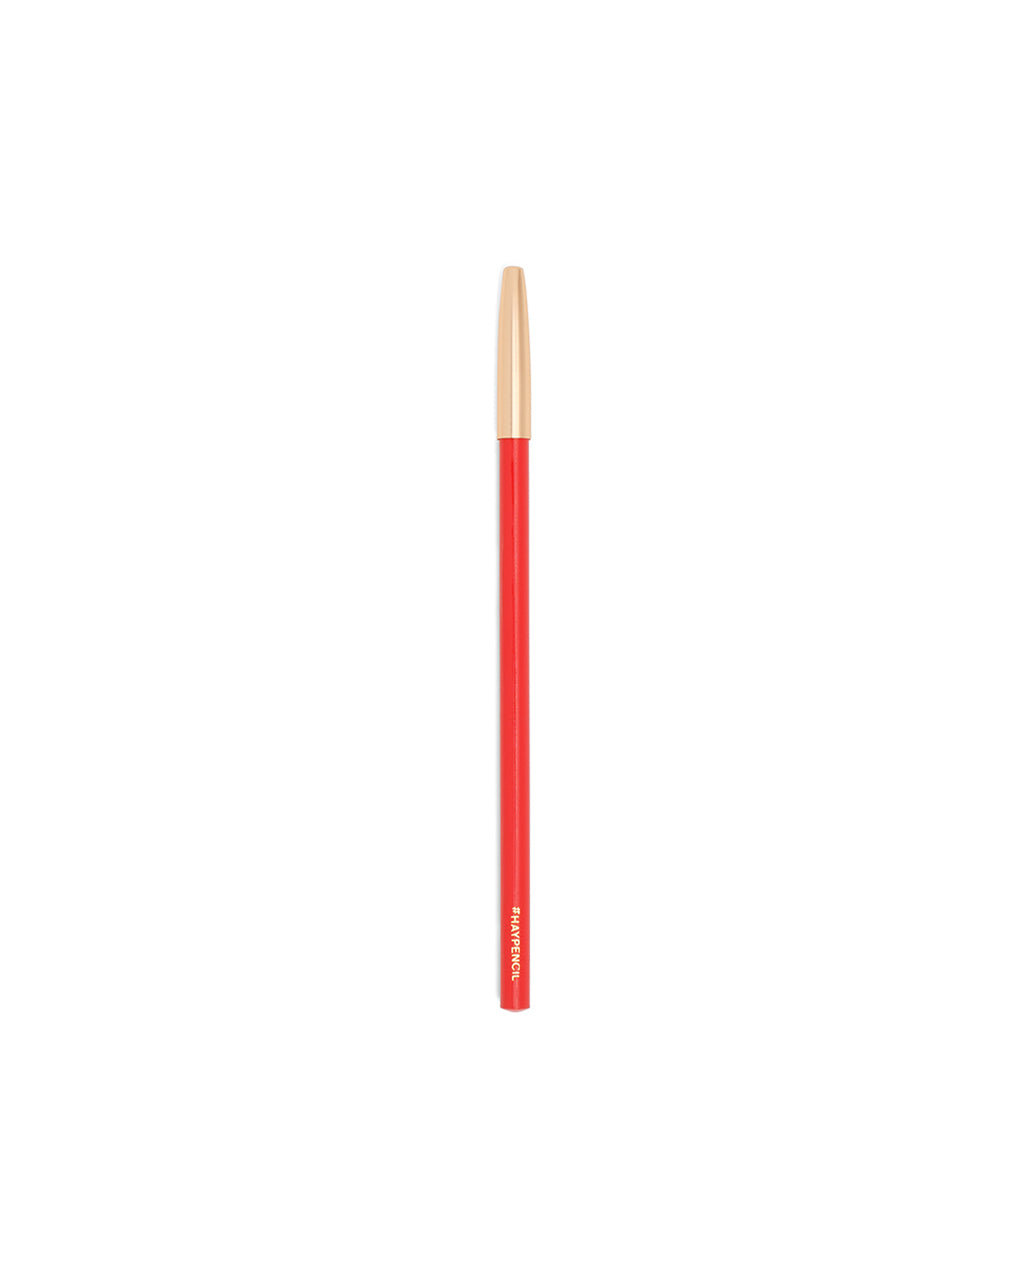 Red pencil with gold cap on.